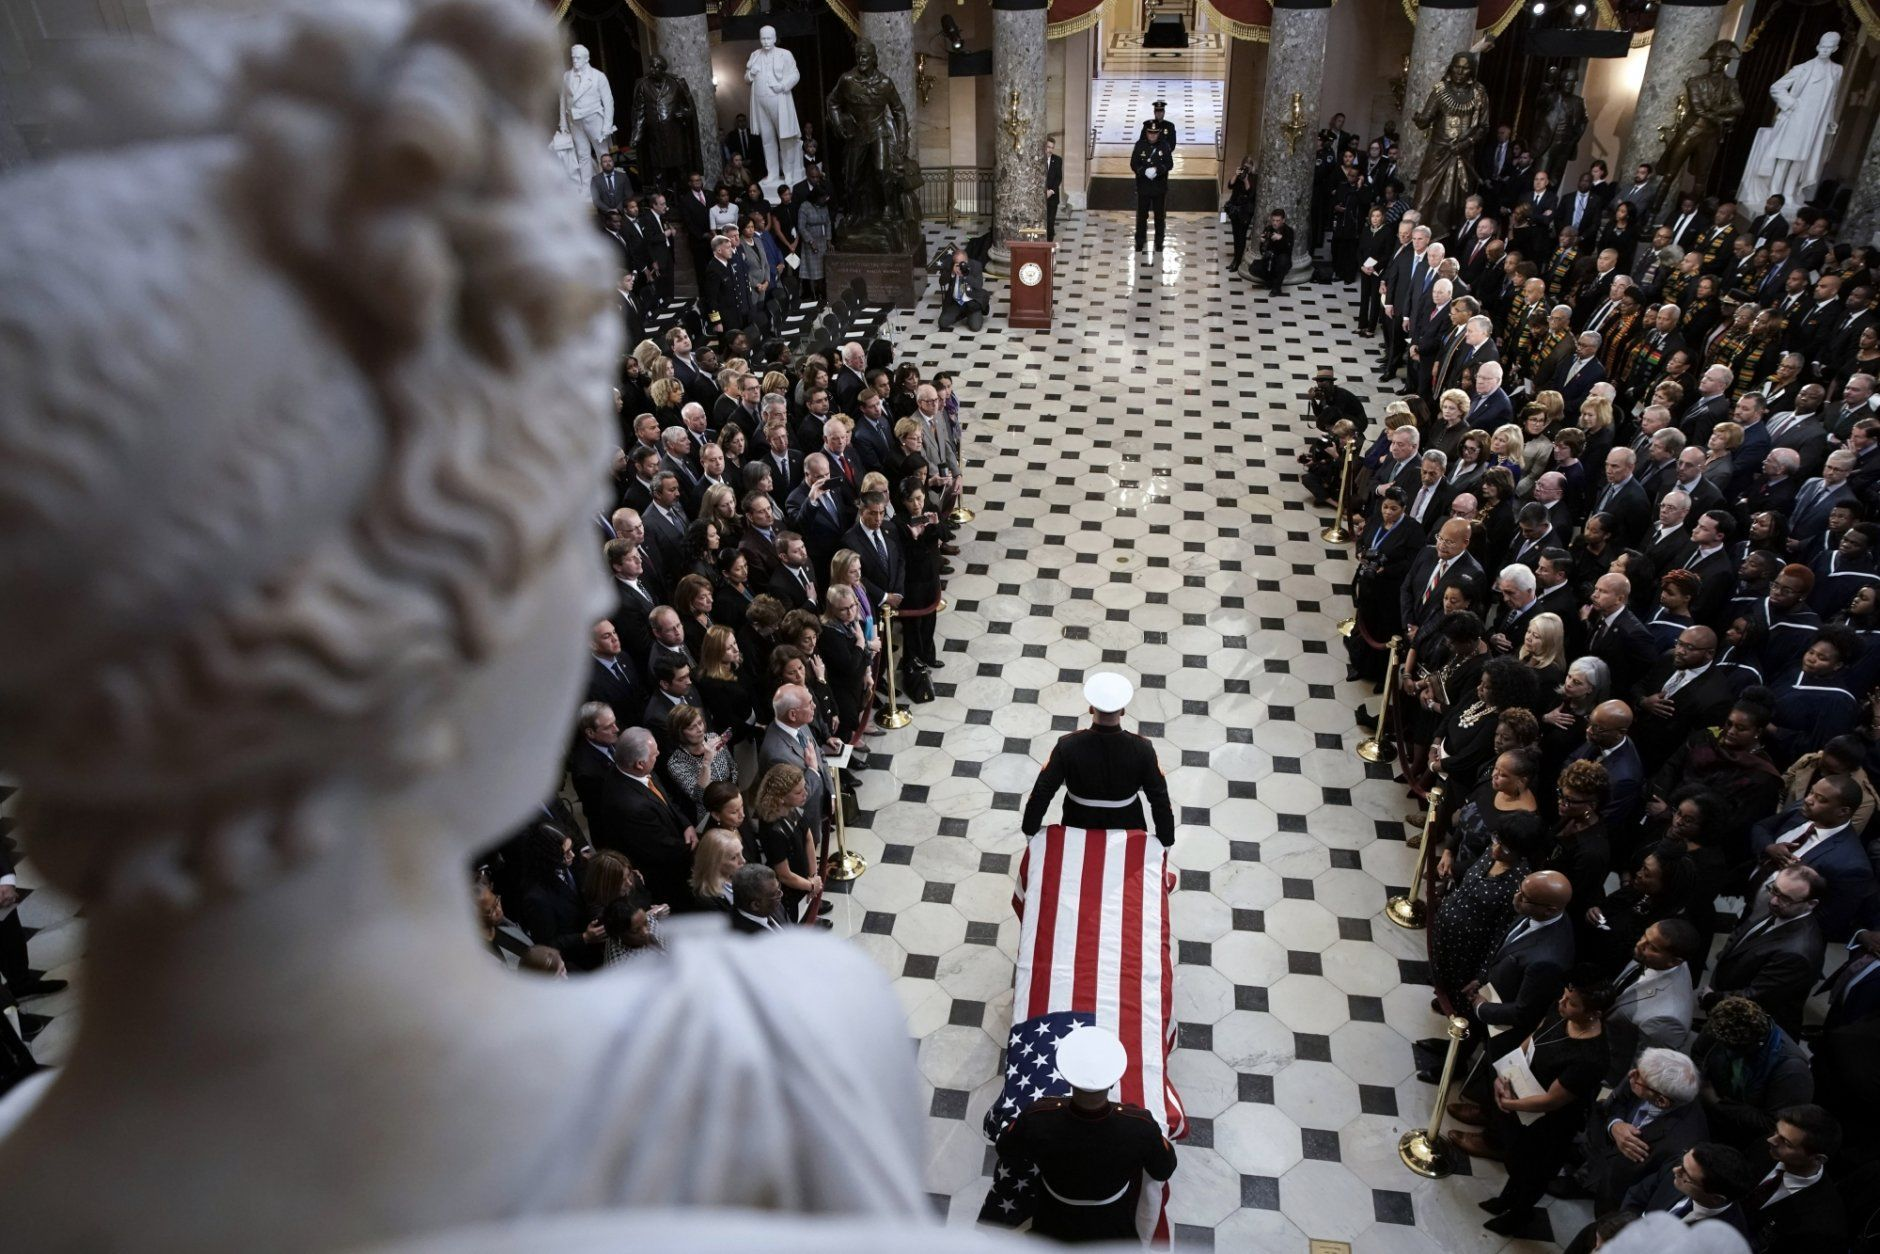 A military honor guard moves the casket Rep. Elijah Cummings, D-Md., into Statuary Hall at the U.S. Capitol in Washington, Thursday, Oct. 24, 2019, for a memorial service. The Maryland congressman and civil rights champion died Thursday, Oct. 17, at age 68 of complications from long-standing health issues. (Al Drago/Pool via AP)